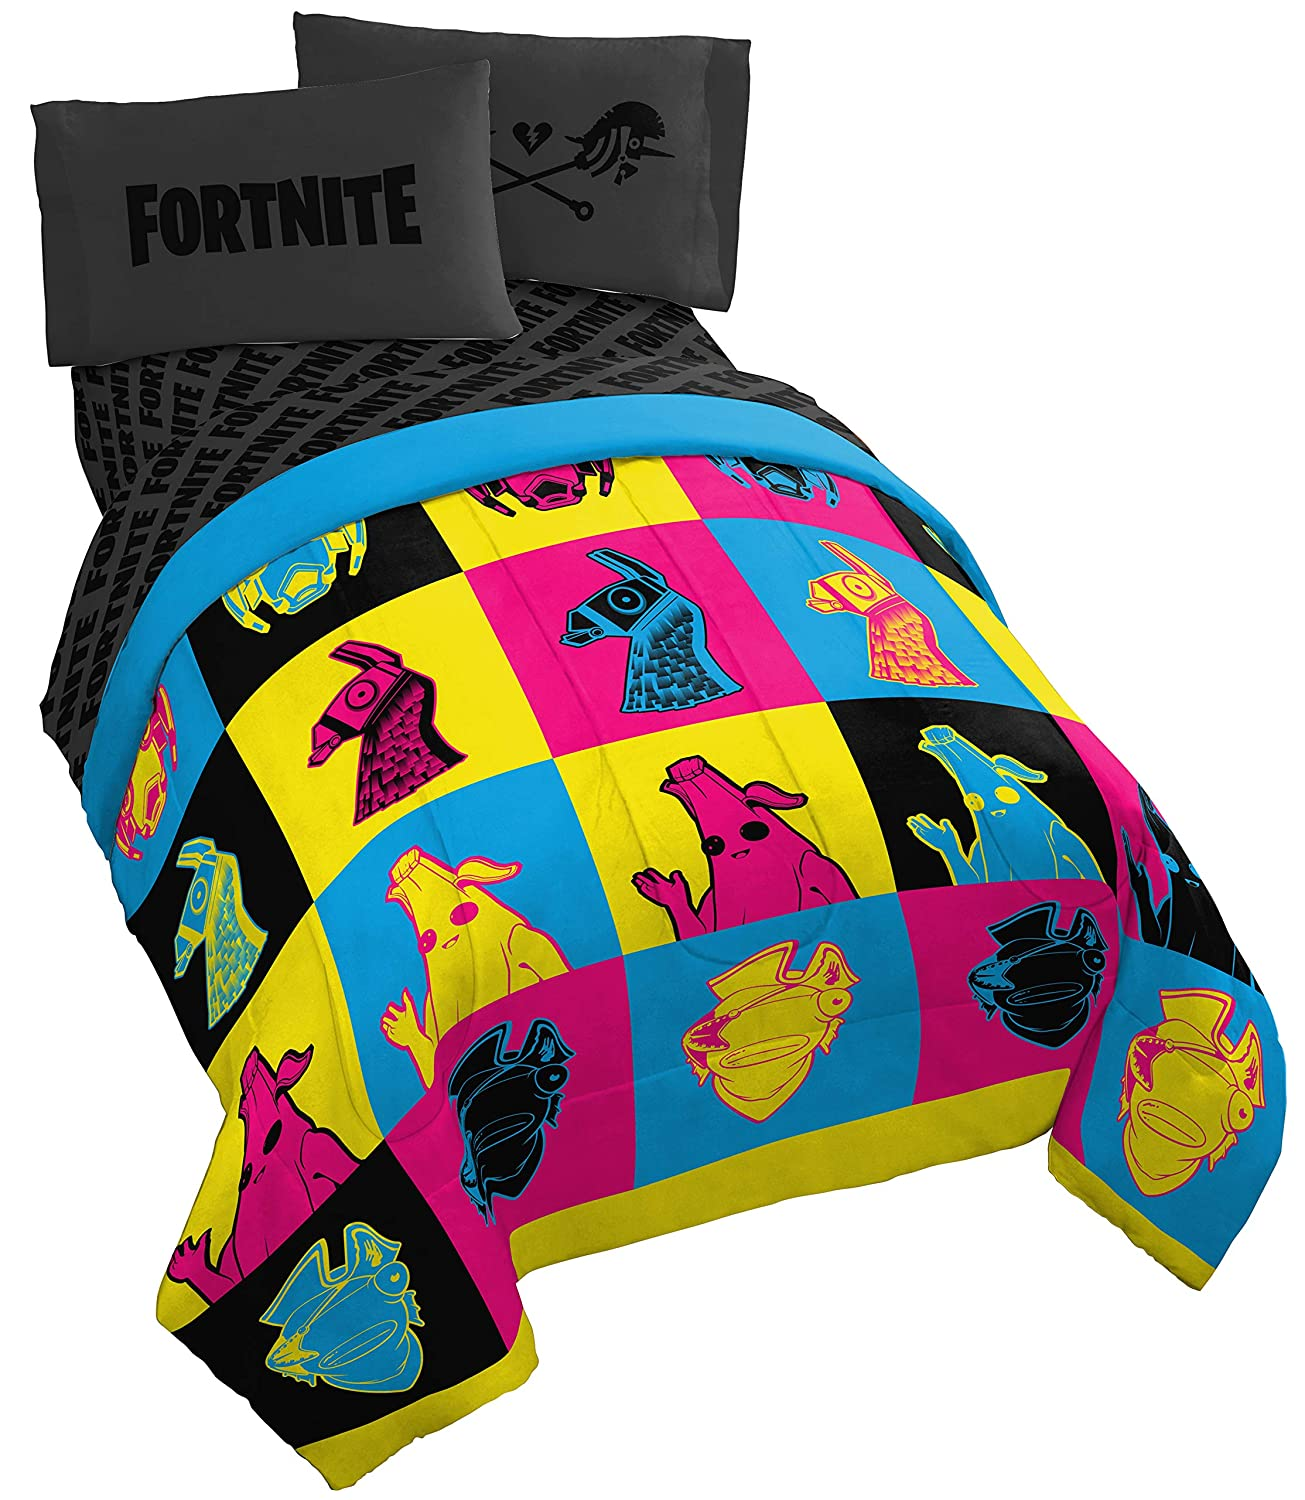 Fortnite Neon Warhol 5 Piece Full Bed Set - Includes Reversible Comforter & Sheet Set - Bedding Features Llama, Peely, & Vertex - Super Soft Fade Resistant Microfiber - (Official Fortnite Product)